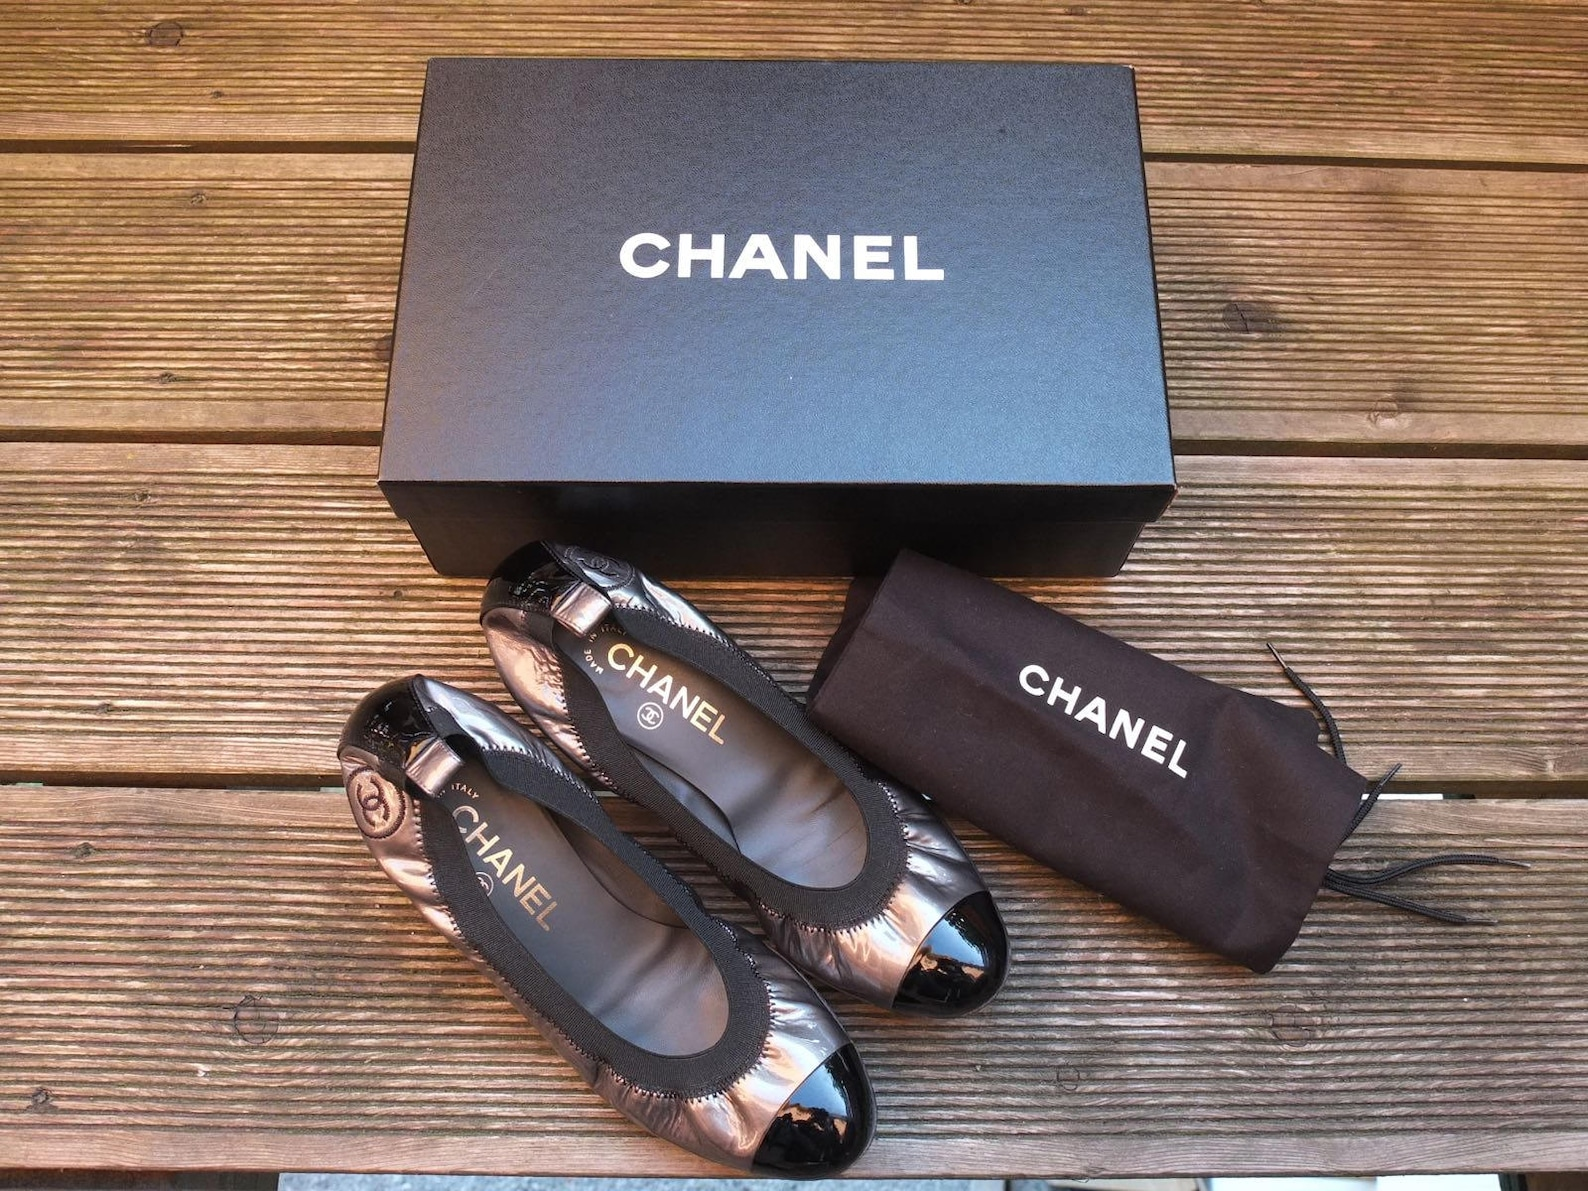 chanel ballet flats · stretch ballerina · cap toe pumps · evening shoes · pumps · sandals · heeled ballerines · ballerina